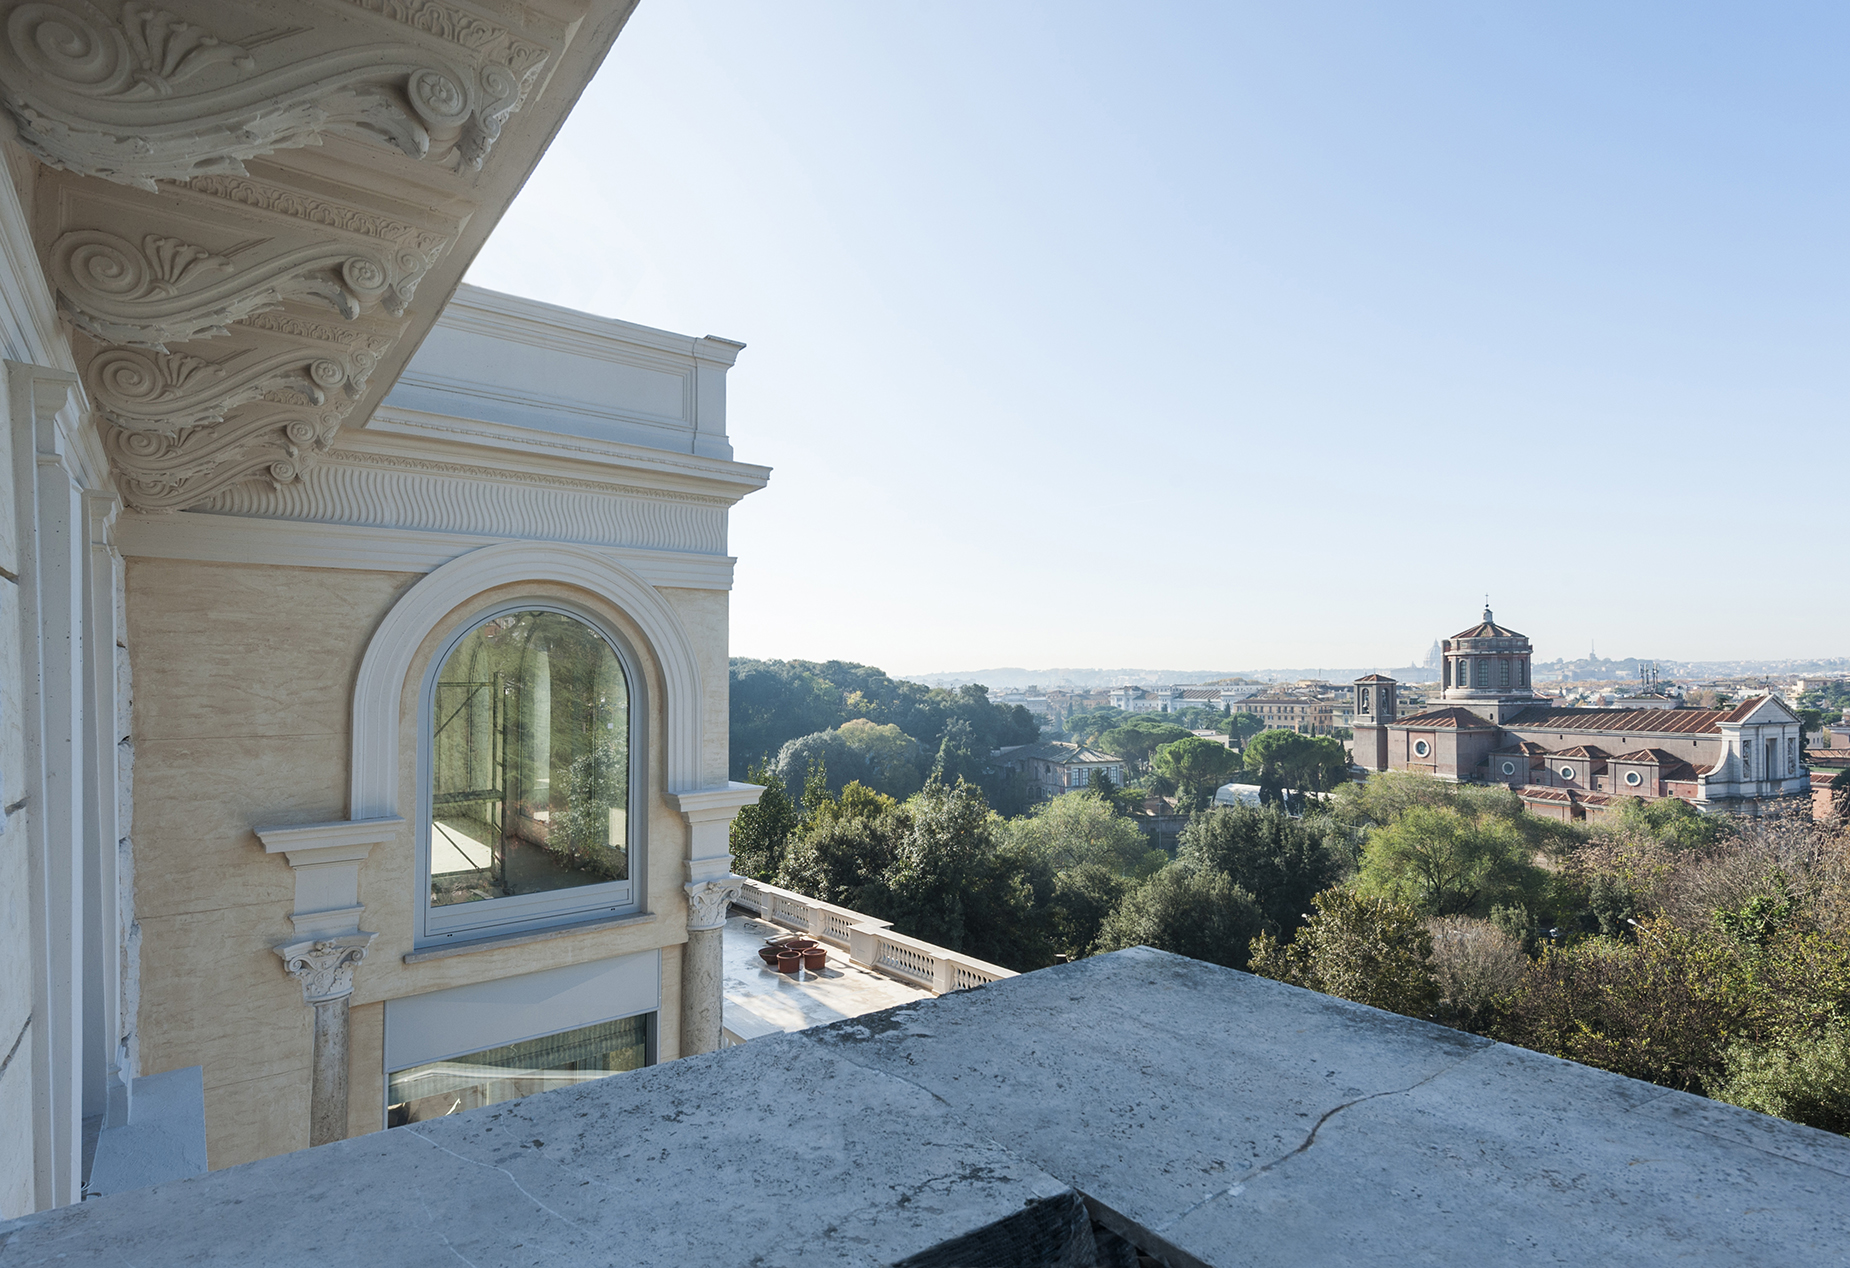 Additional photo for property listing at Magnificent renovated apartment in the Monti Parioli neighborhood Largo Monti Parioli Rome, Rome 00197 Italien